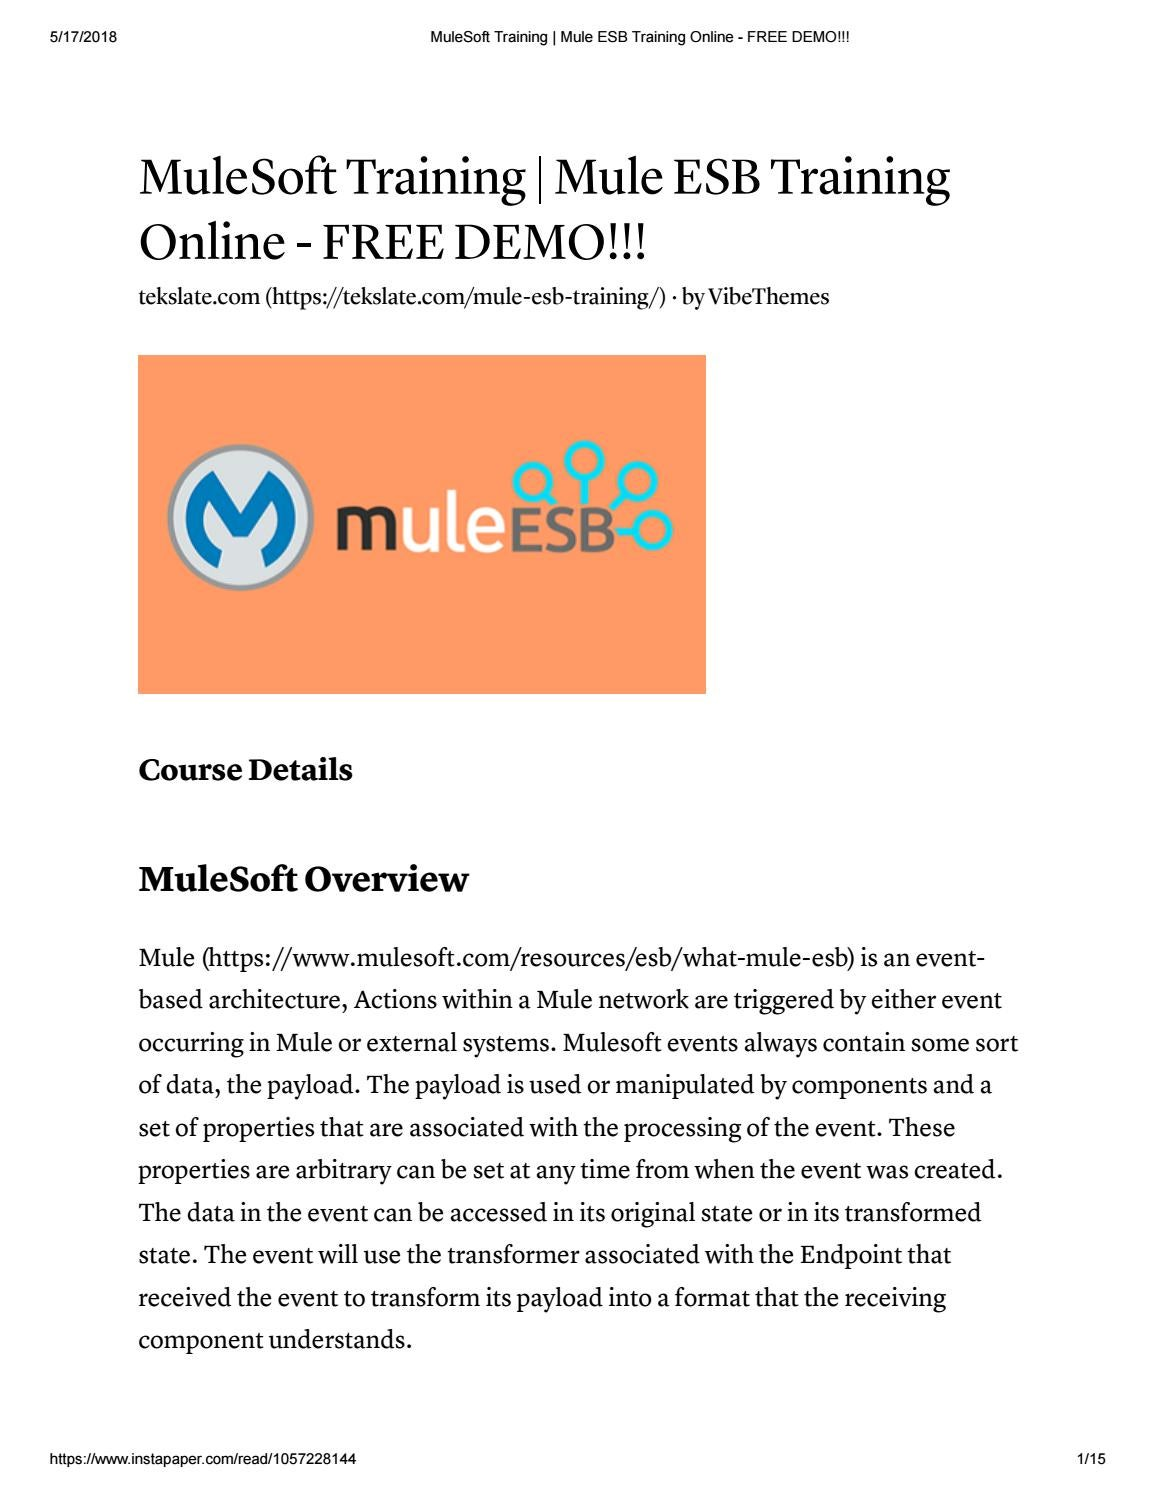 mulesoft training mule esb training online free demo!!! by katherine